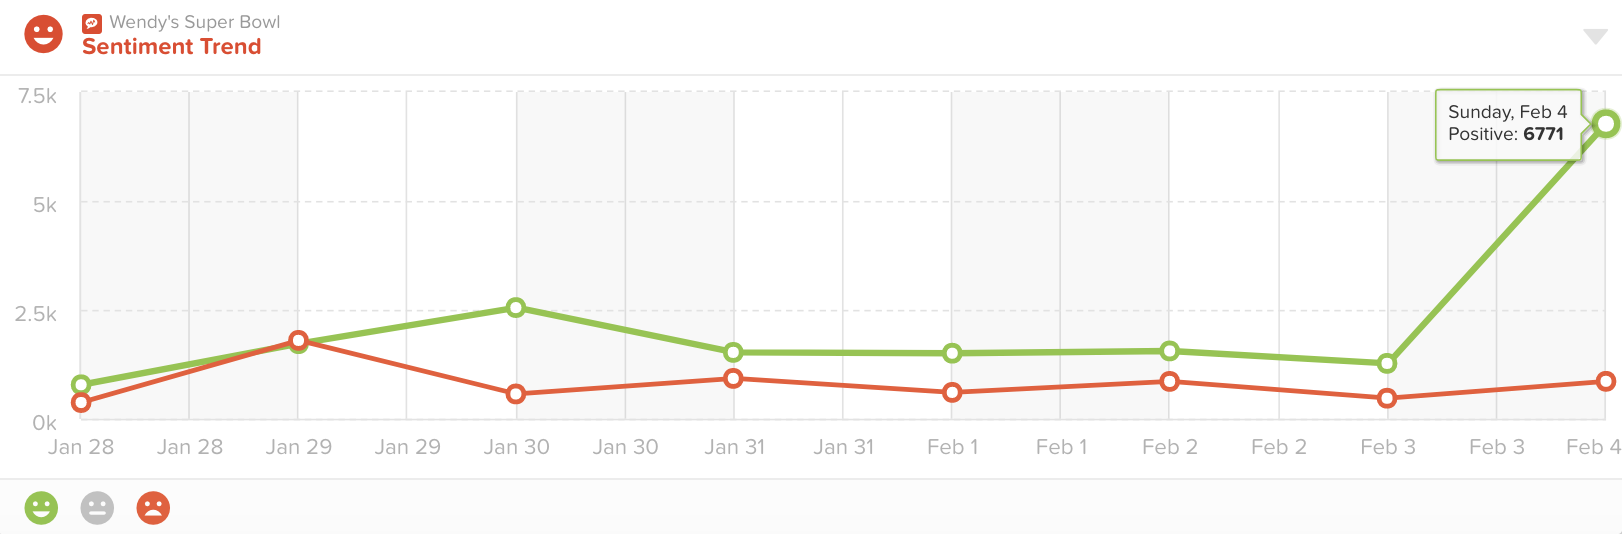 About 85% of the social media sentiment about Wendy's was positive on Feb 4.